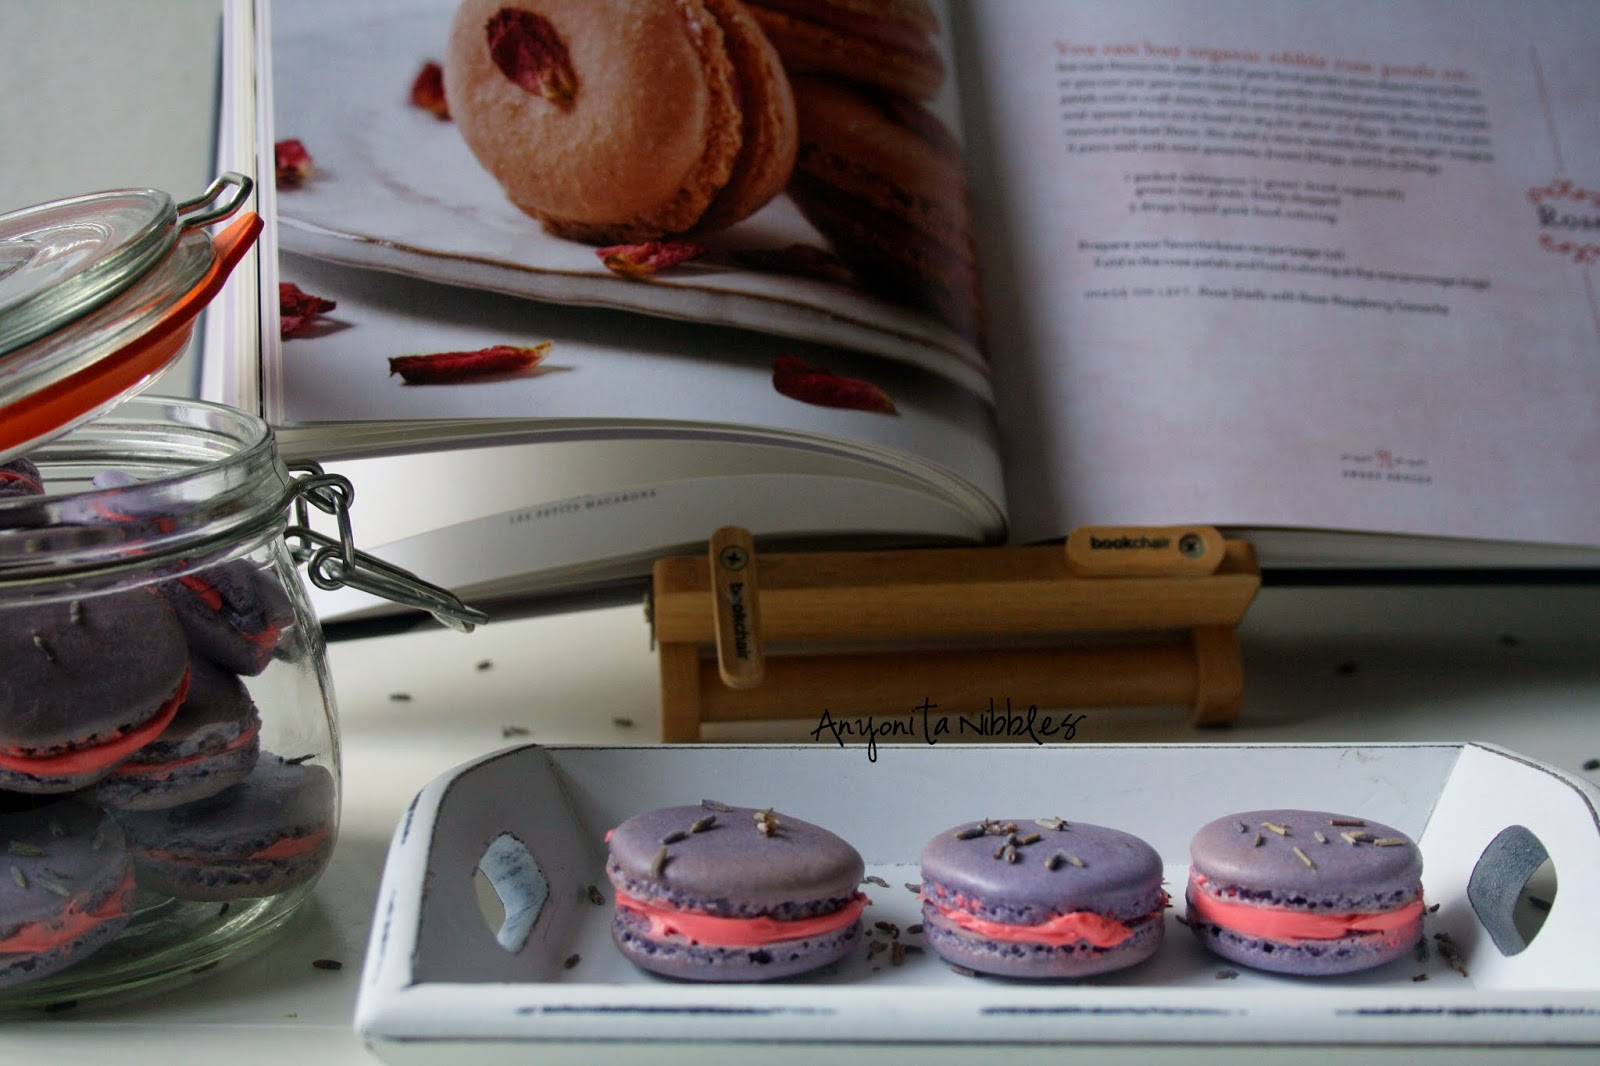 Mother's Day Lavender and Rose Macarons from www.anyonita-nibbles.co.uk